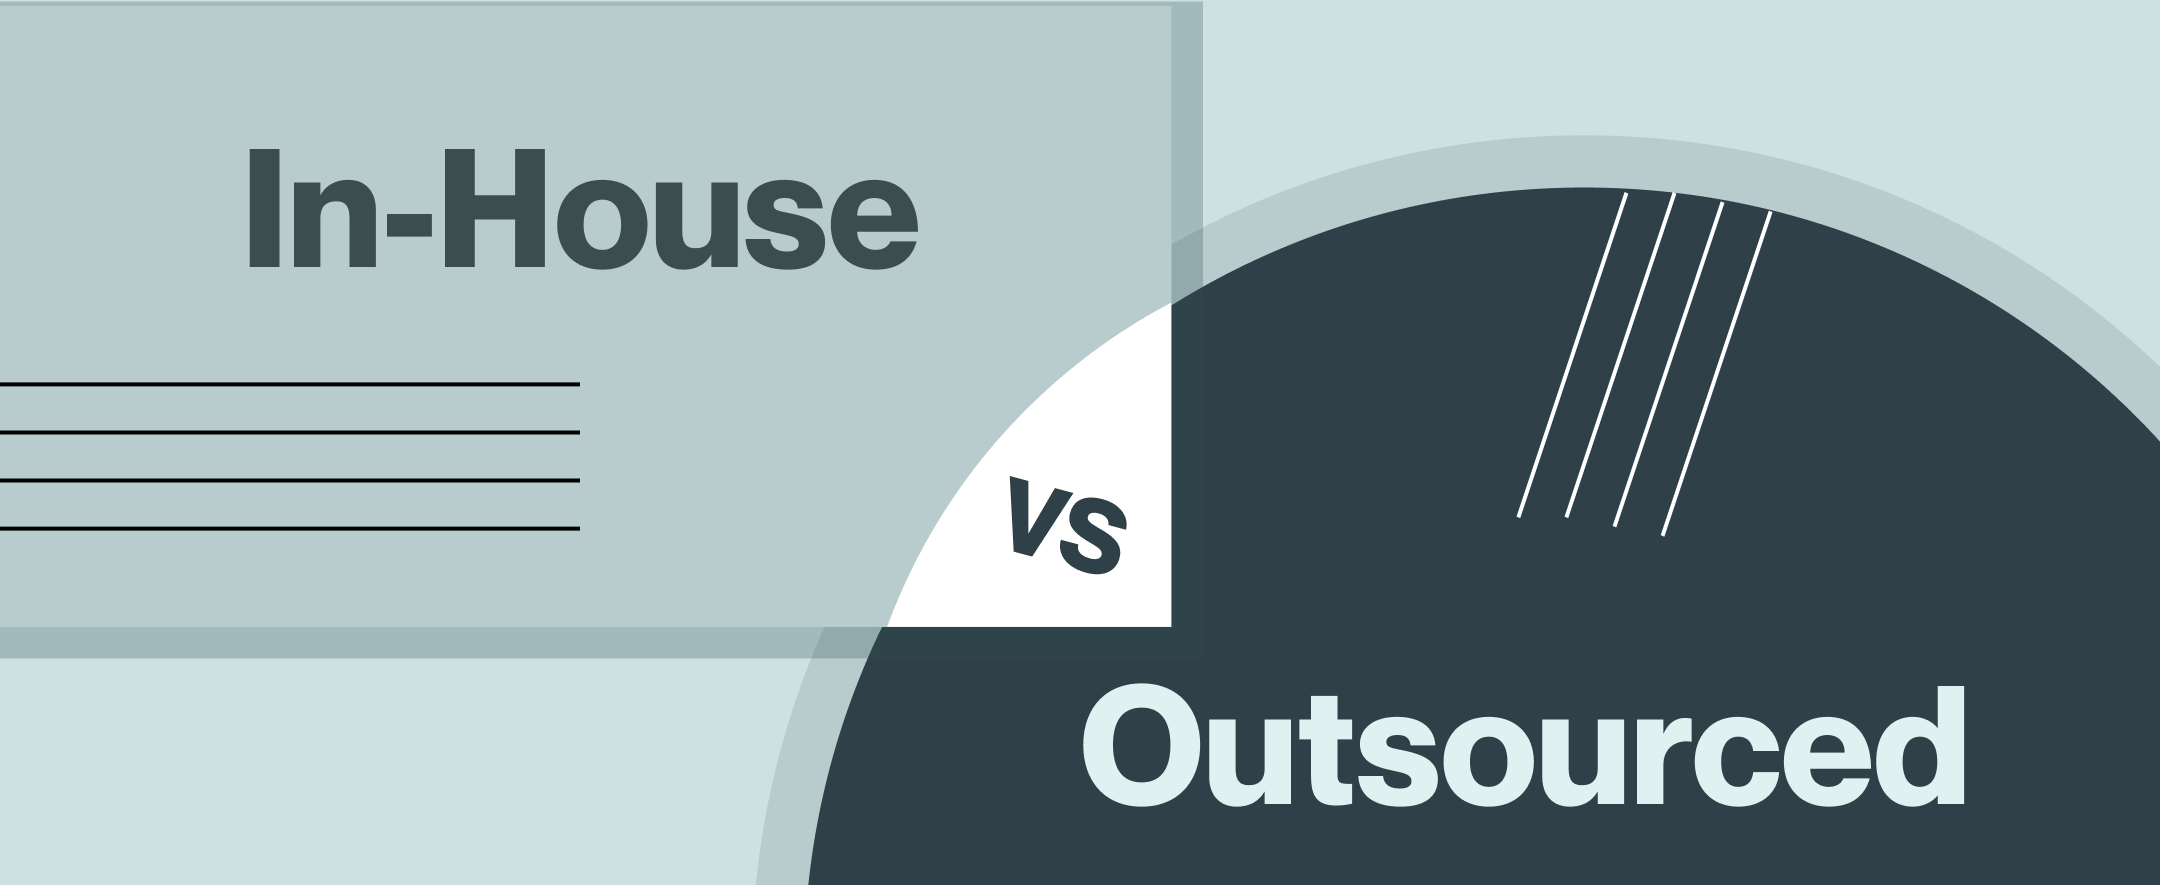 In-House Production vs Outsourcing- Pros & Cons1